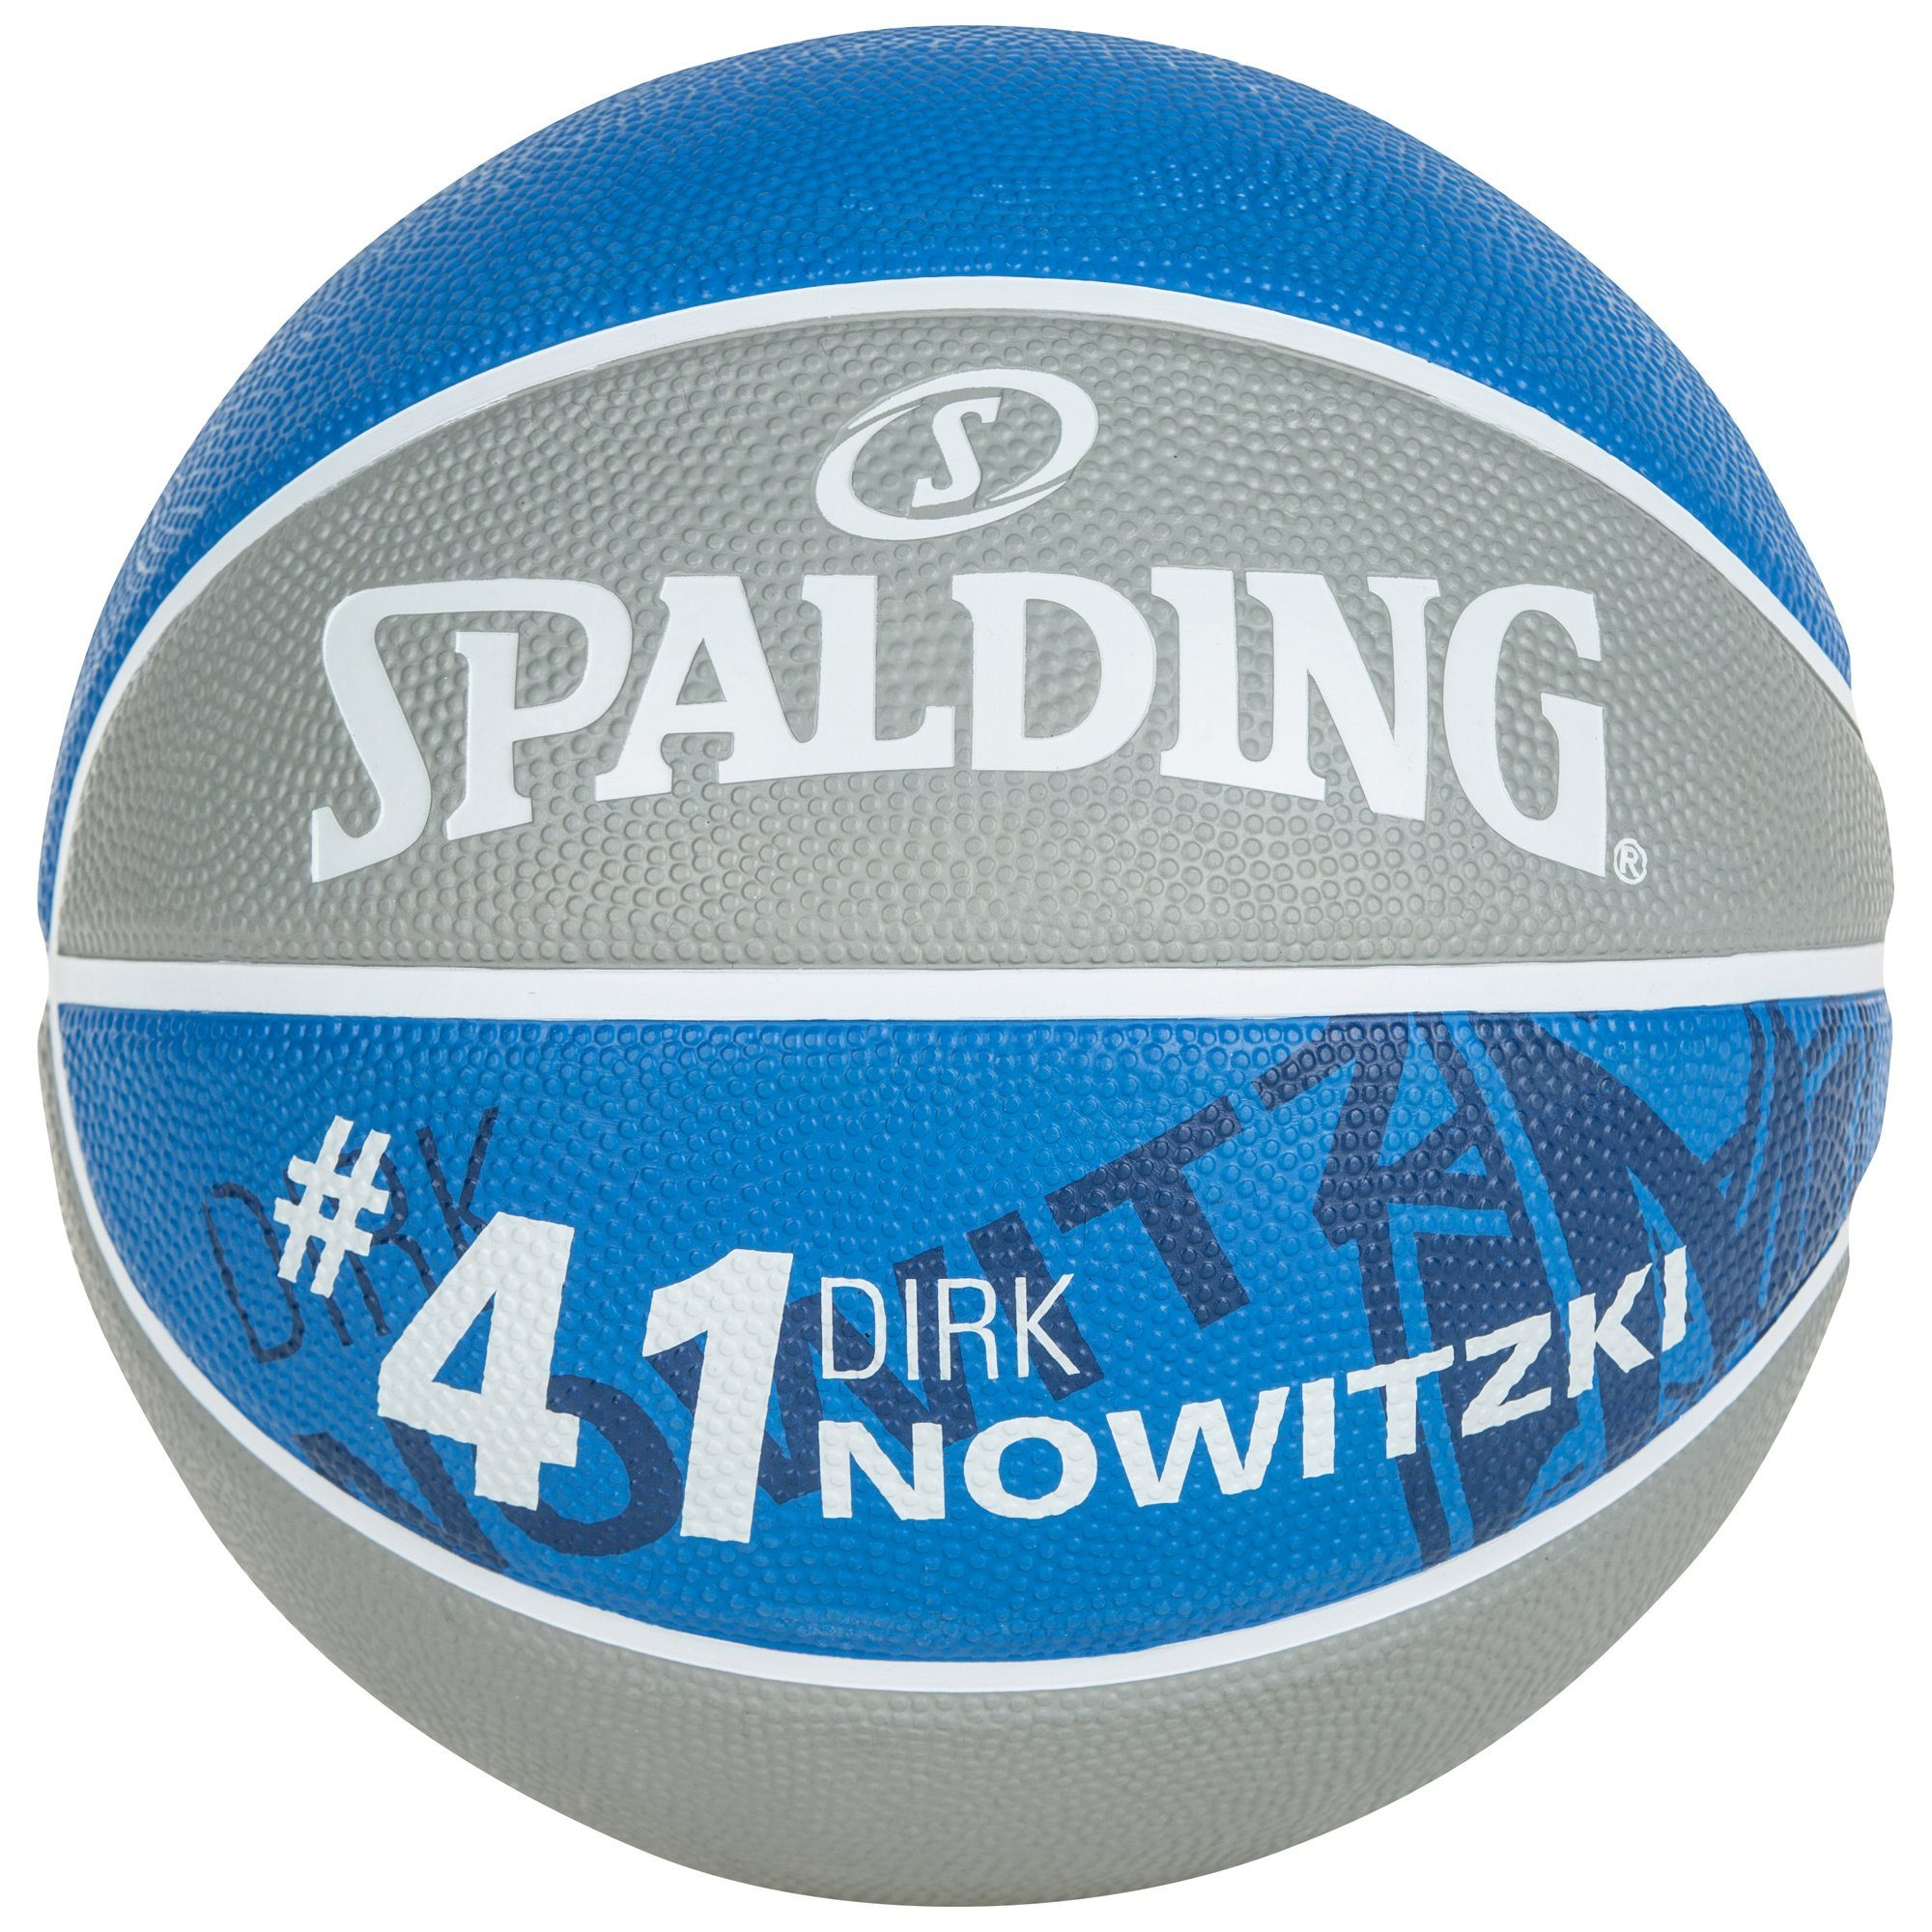 SPALDING NBA Player Dirk Nowitzki Basketball